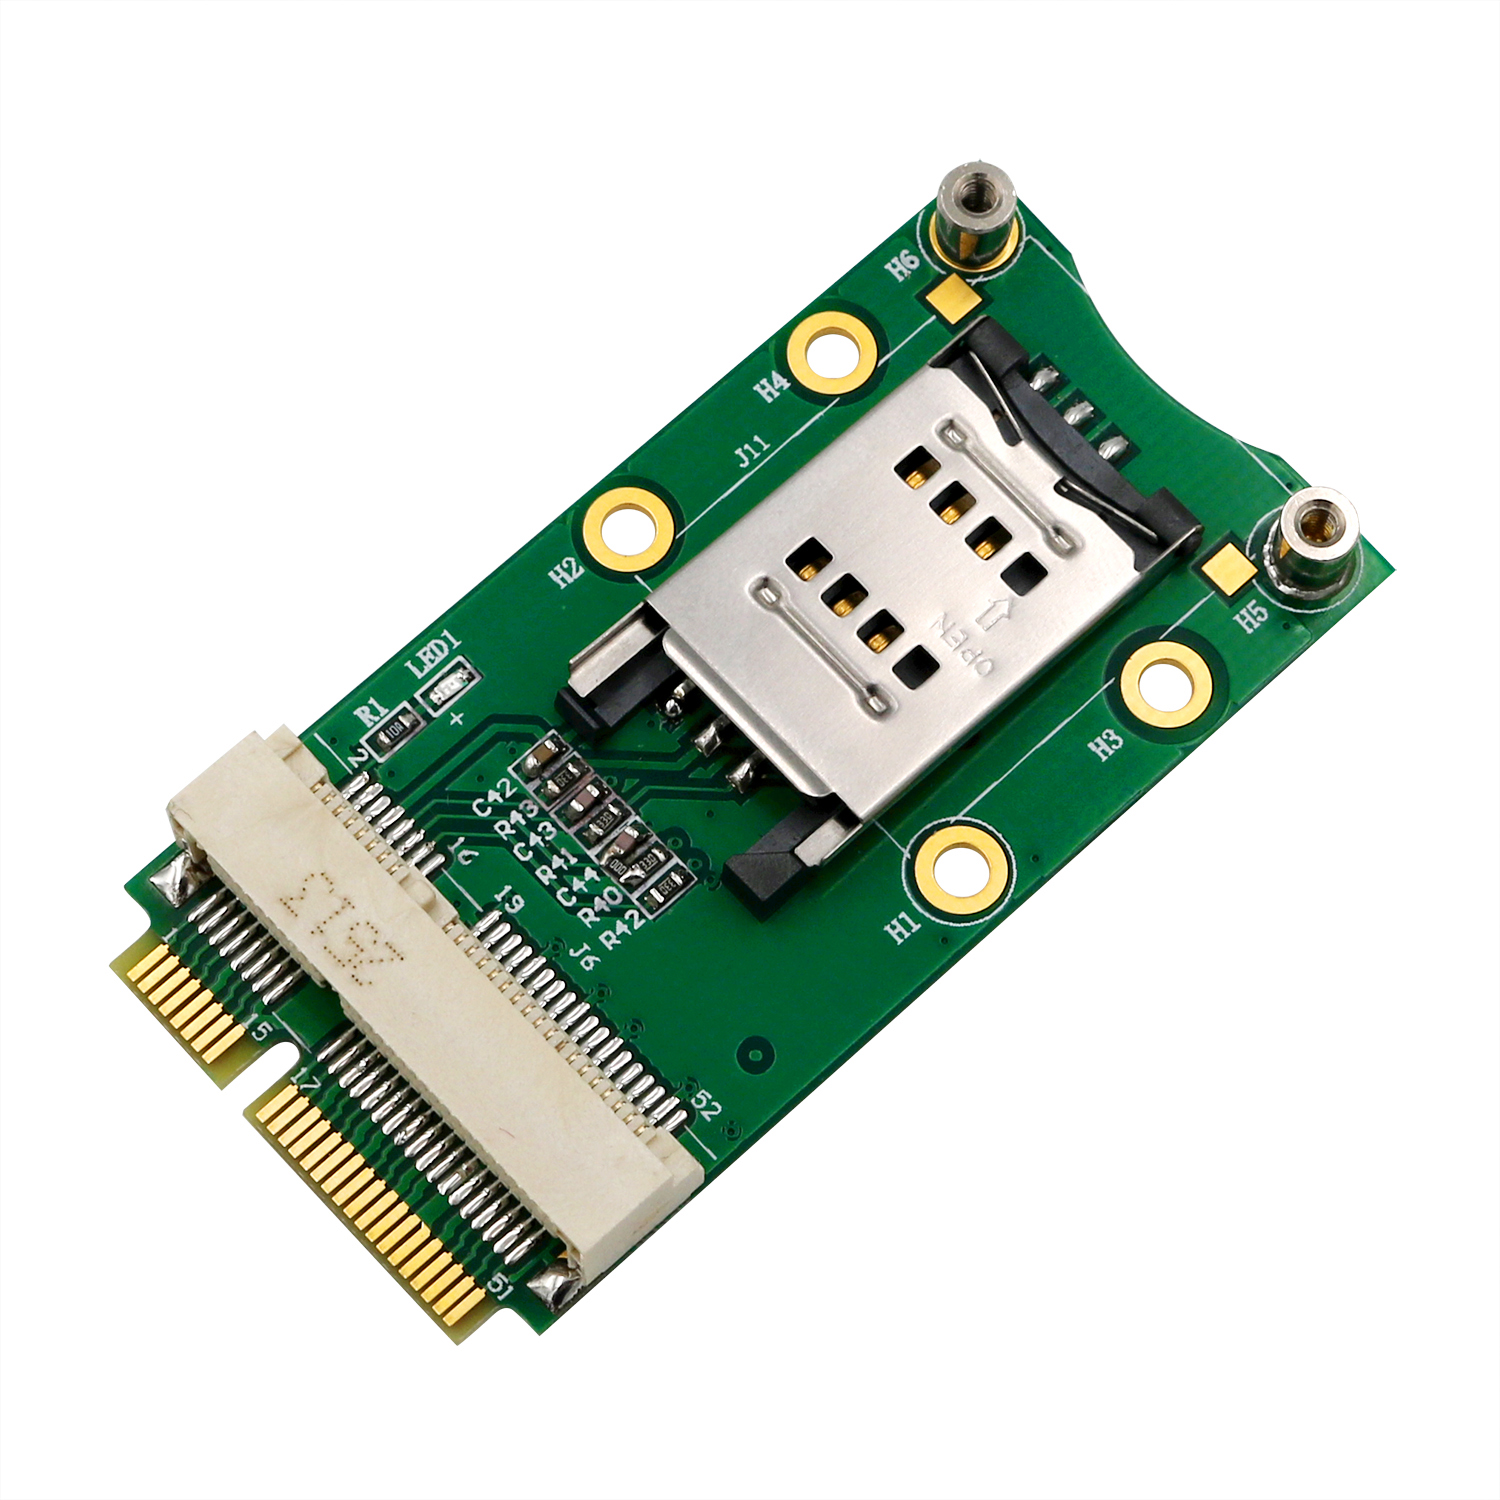 Mini PCI-E Adapter Card mPCIe with SIM Card Slot for 3G 4G Module USIM Card Slot Extension / WWAN LTE / GPS Card Desktop Laptop(China)